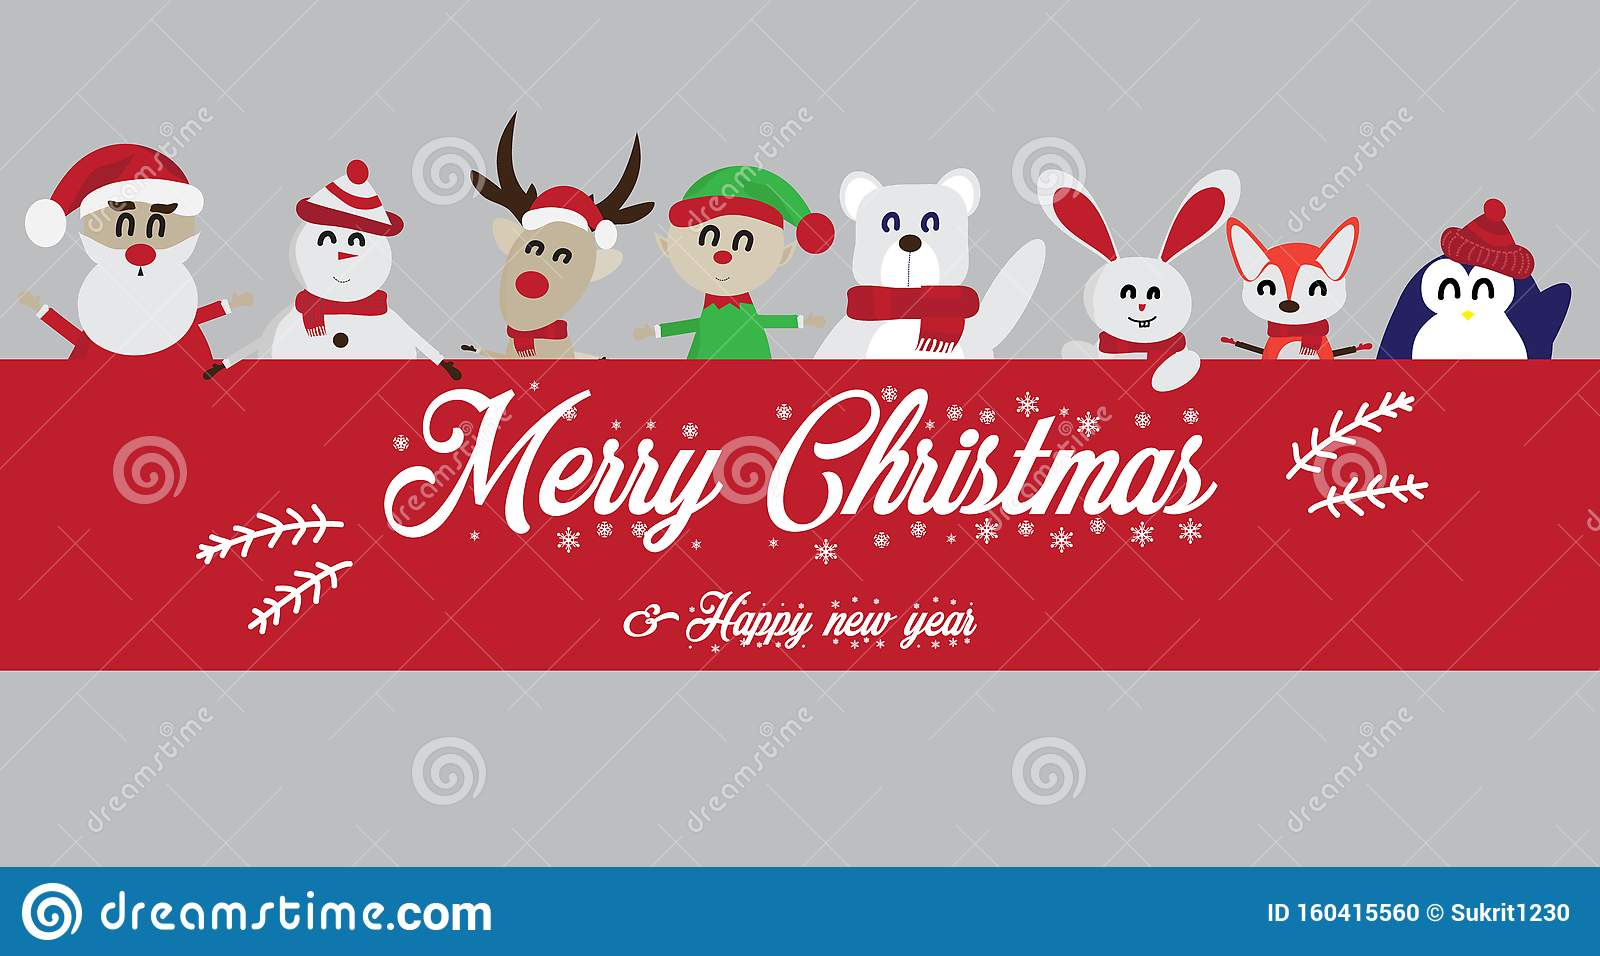 Santa Claus With Children Vector. Merry Christmas And